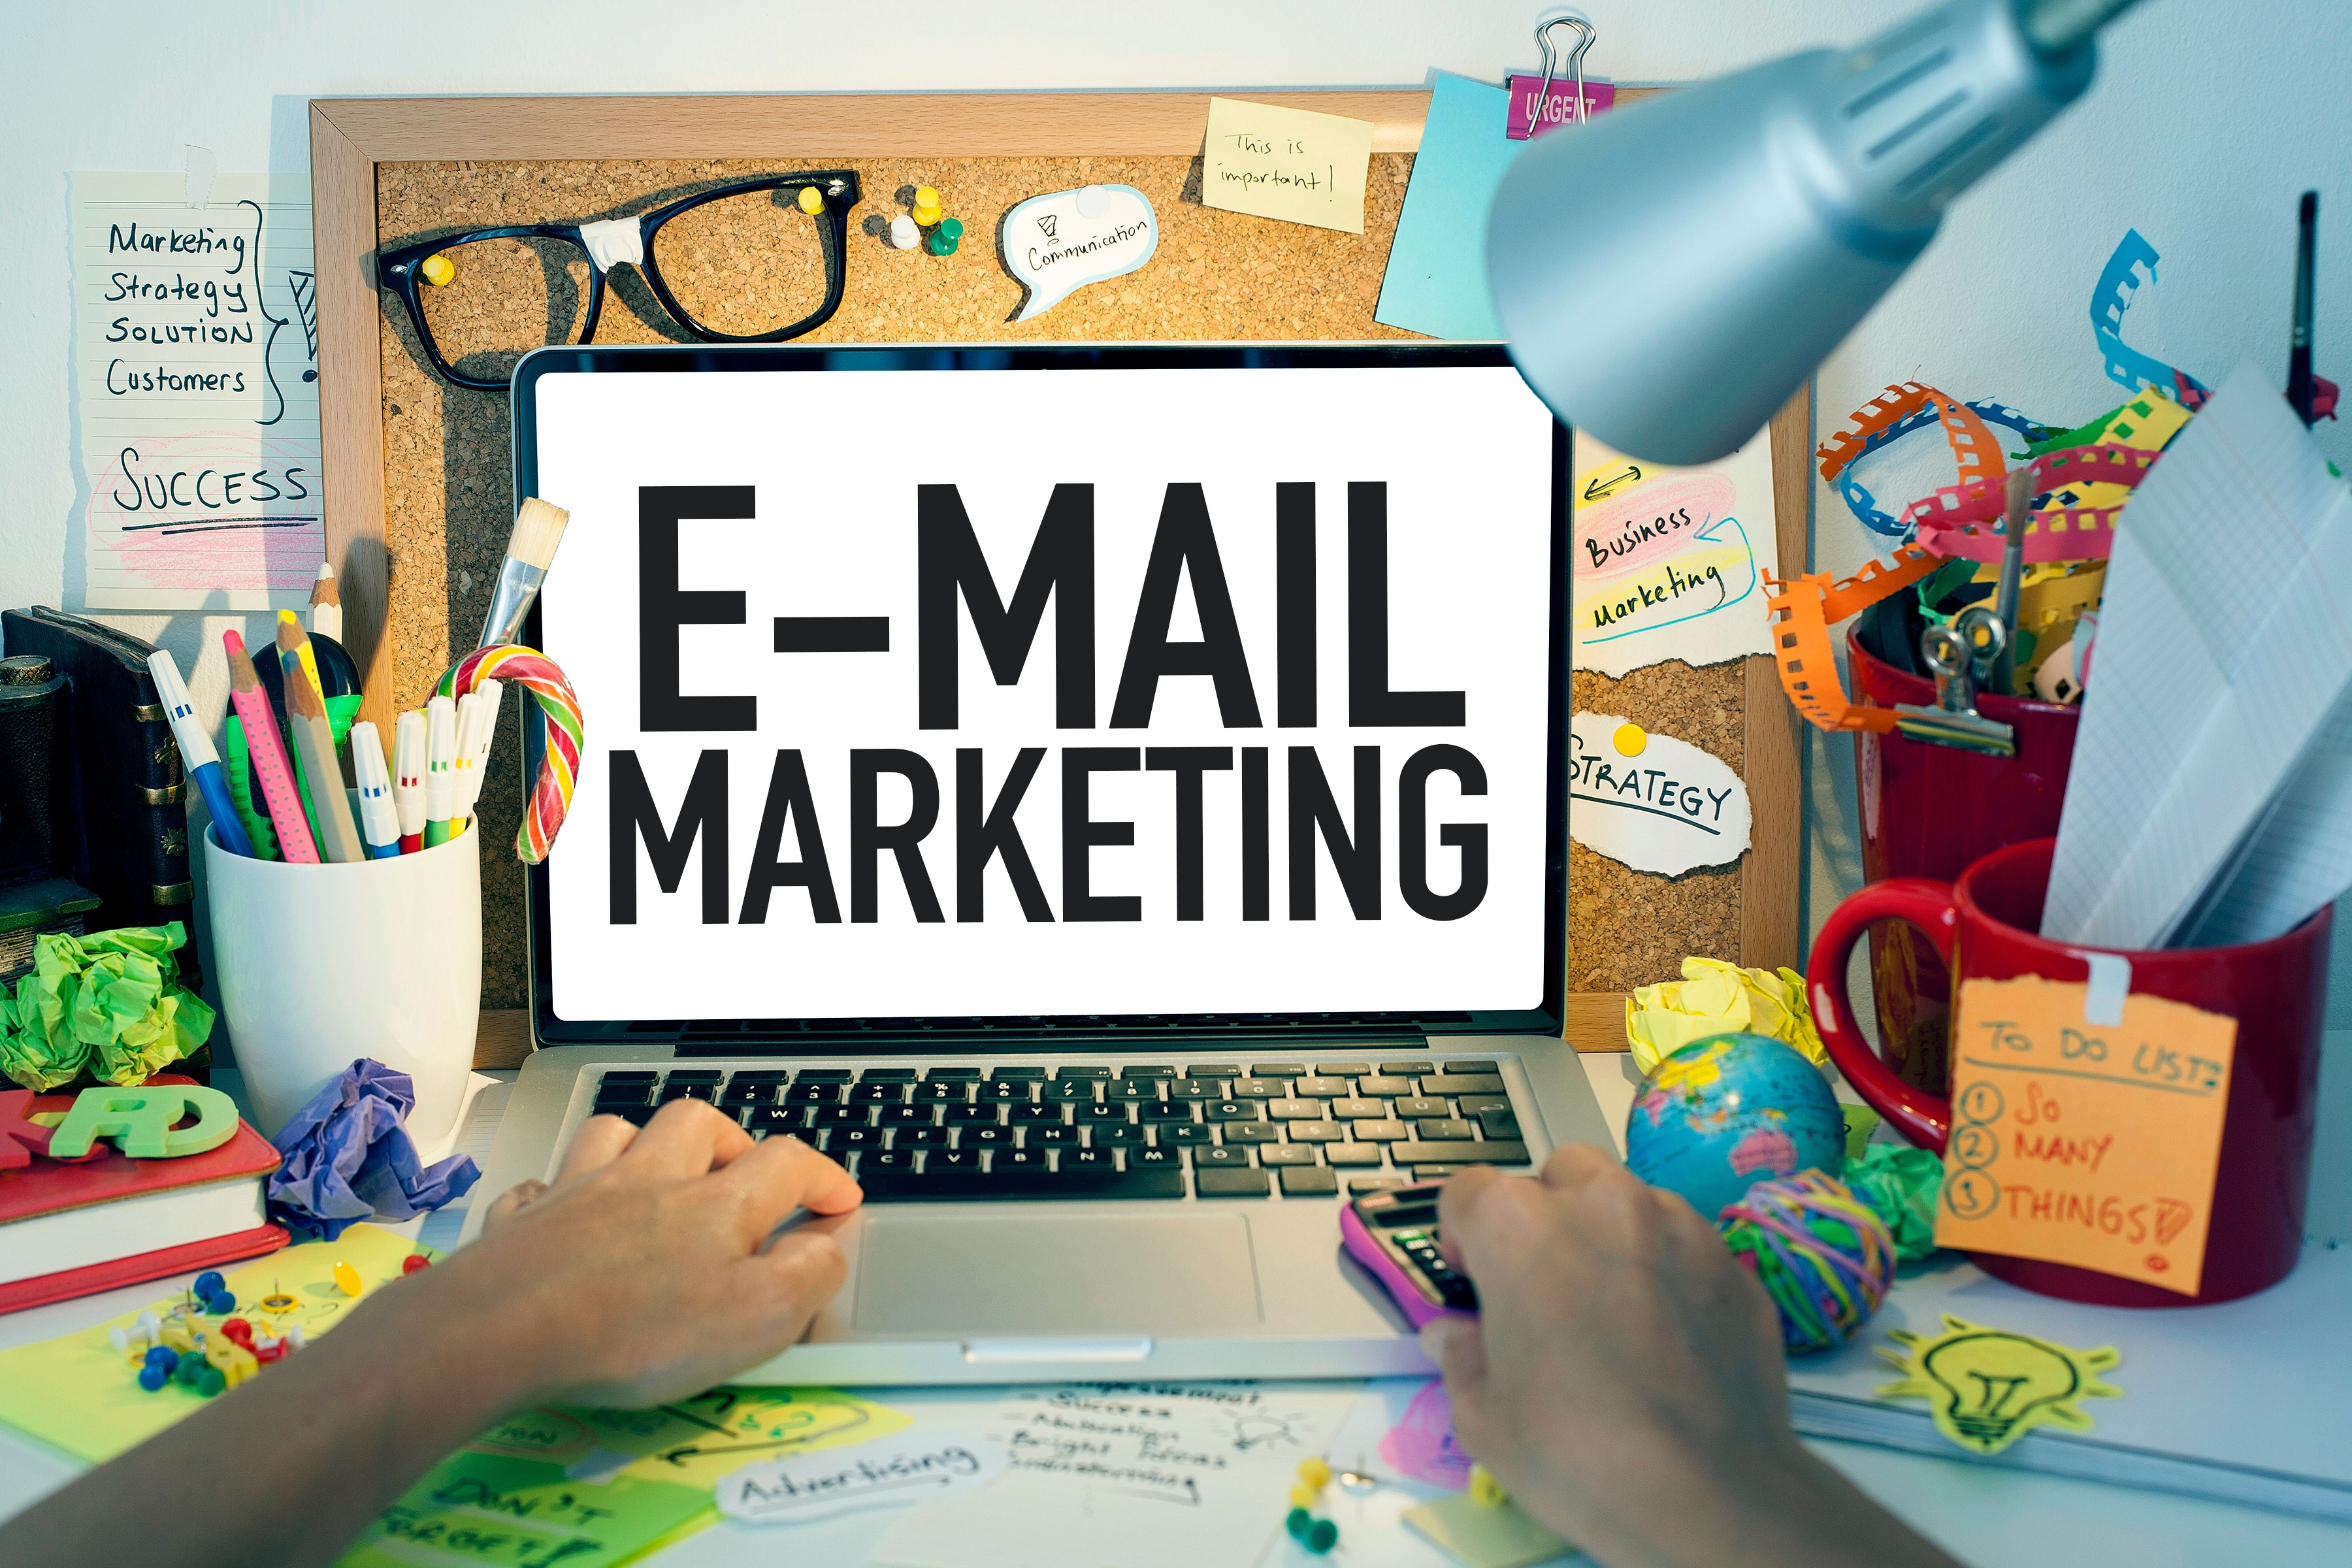 Email Marketing 101: Why Relevant Content is Key